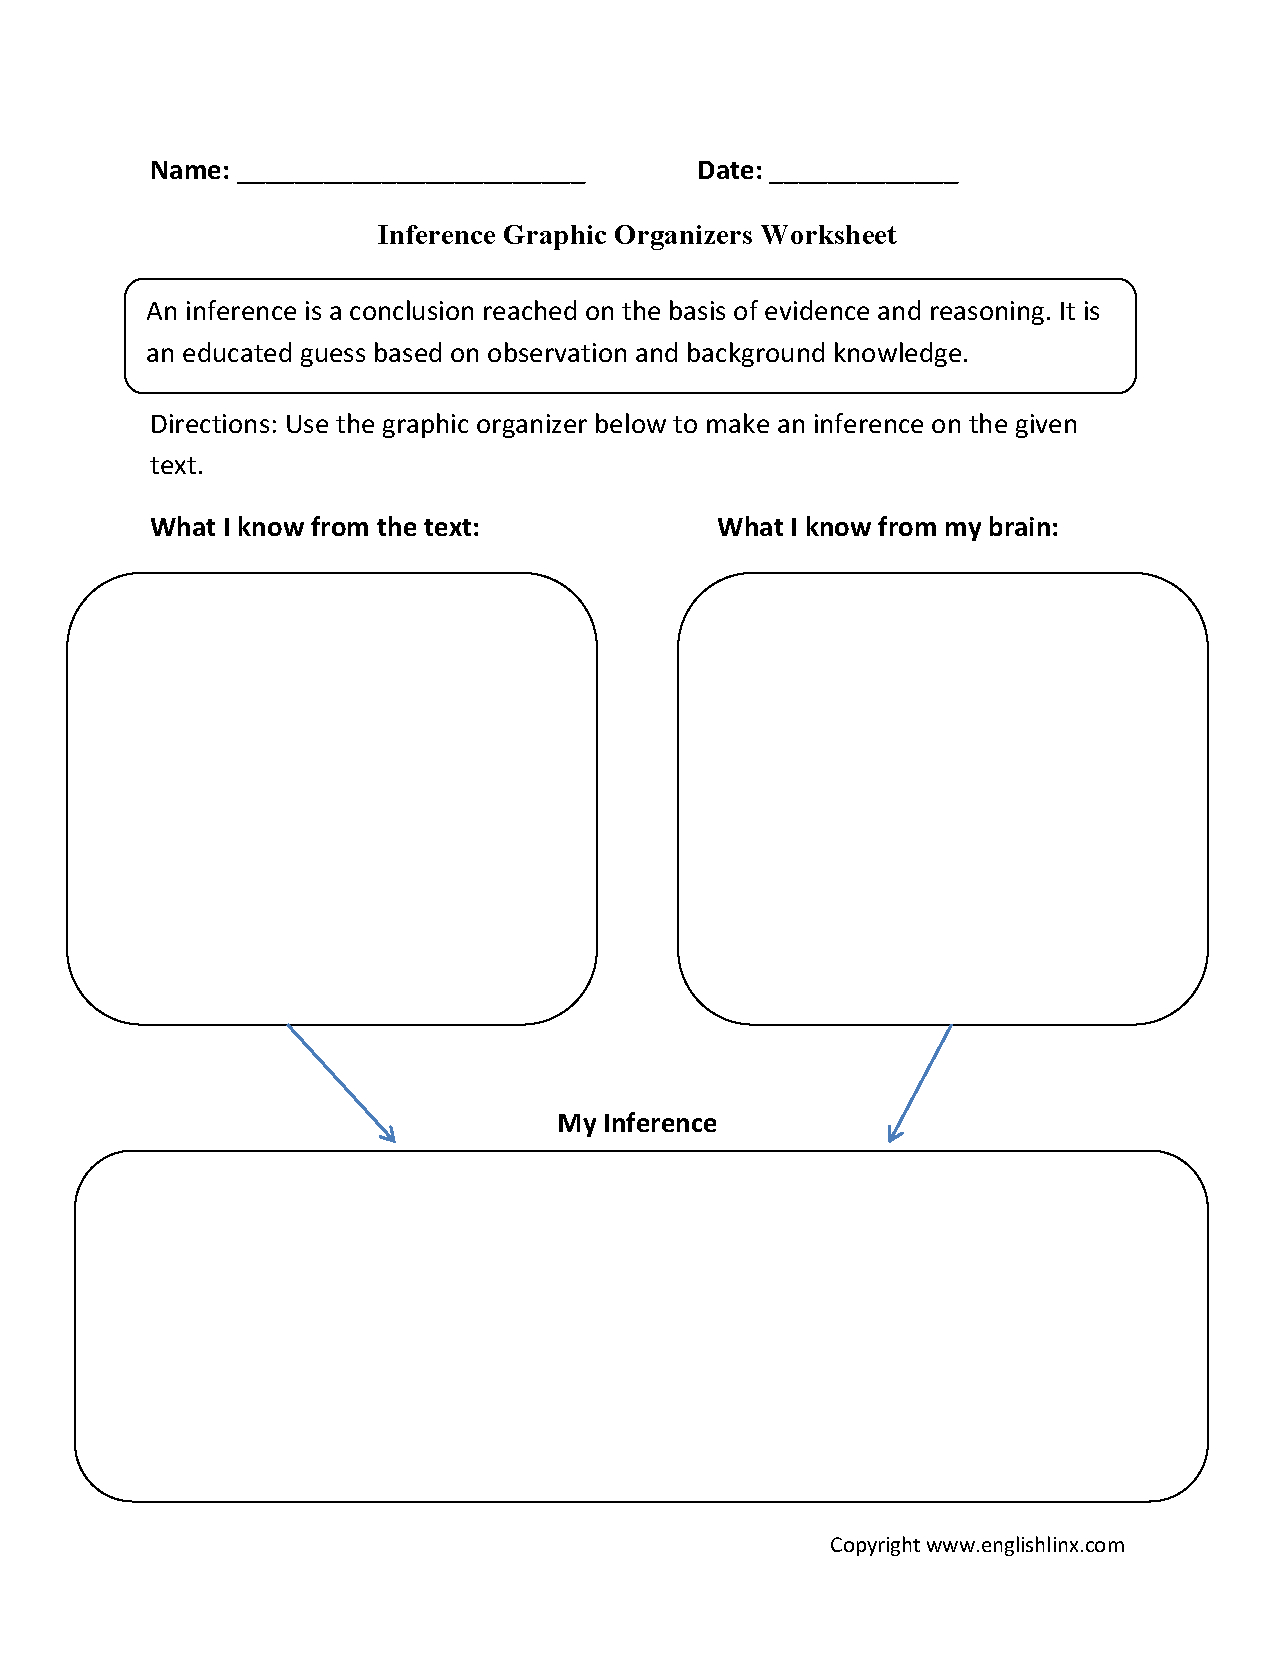 Graphic Organizers Worksheets | Inference Graphic Organizers Worksheets - Free Printable Graphic Organizers